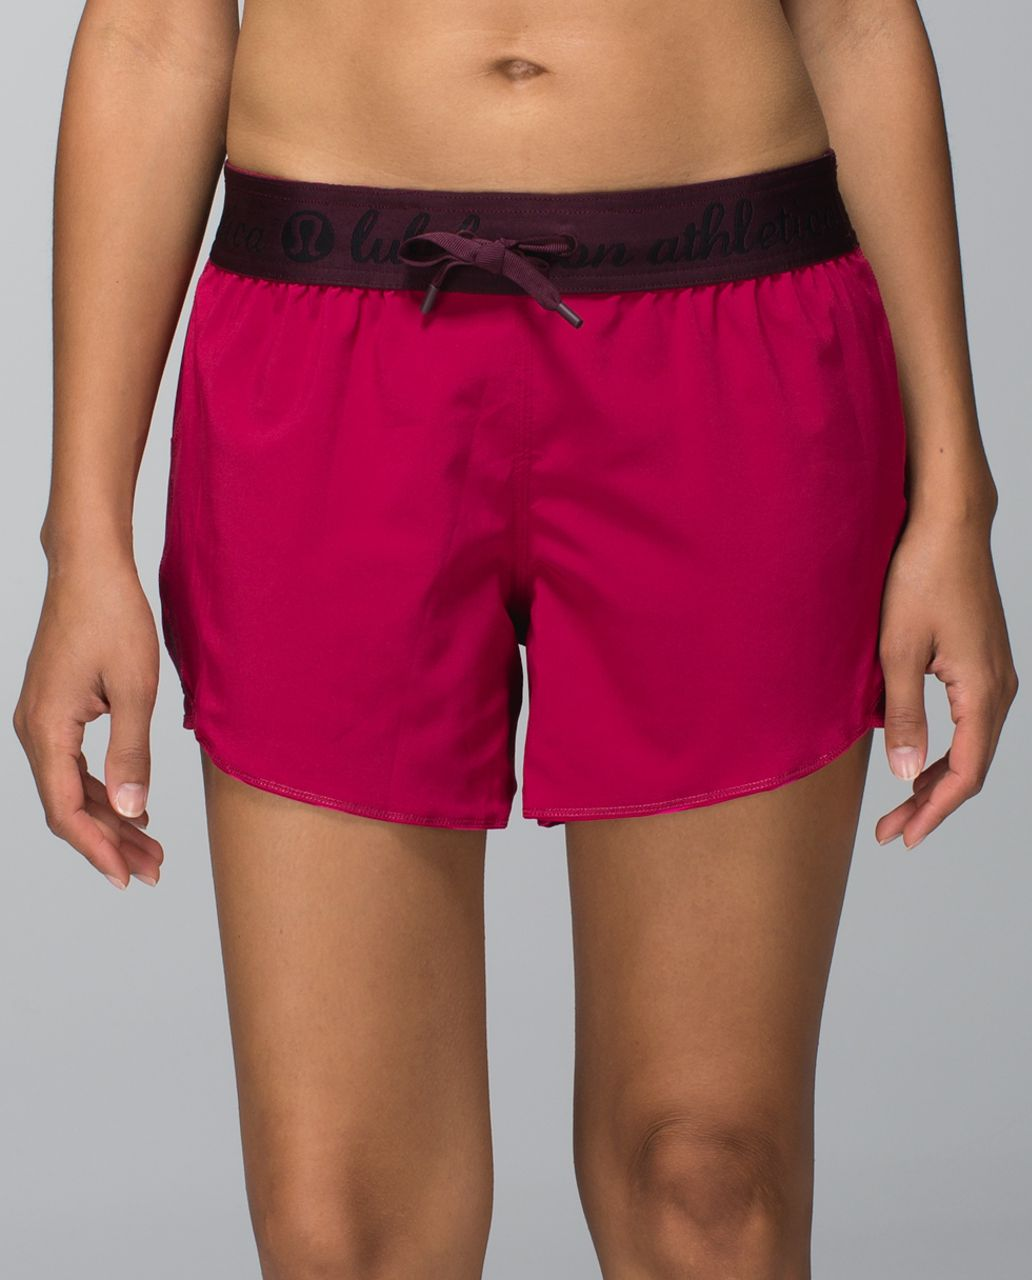 Lululemon Go the Distance Short - West2east Stripe Printed Bumble Berry / Bumble Berry